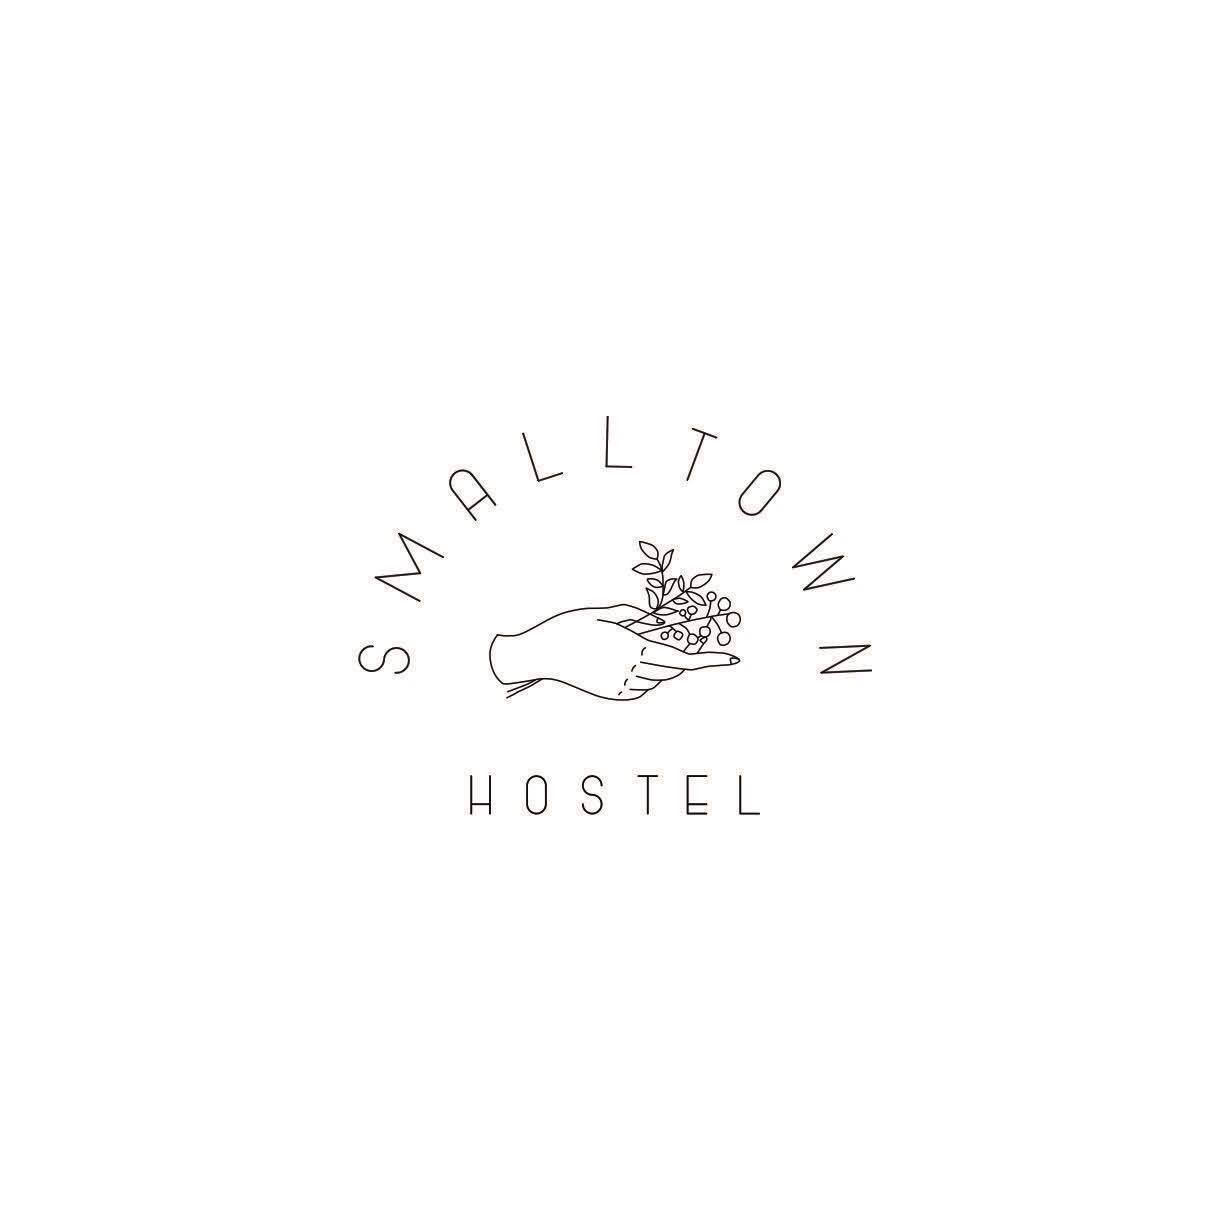 SMALL TOWN HOSTEL ロゴ